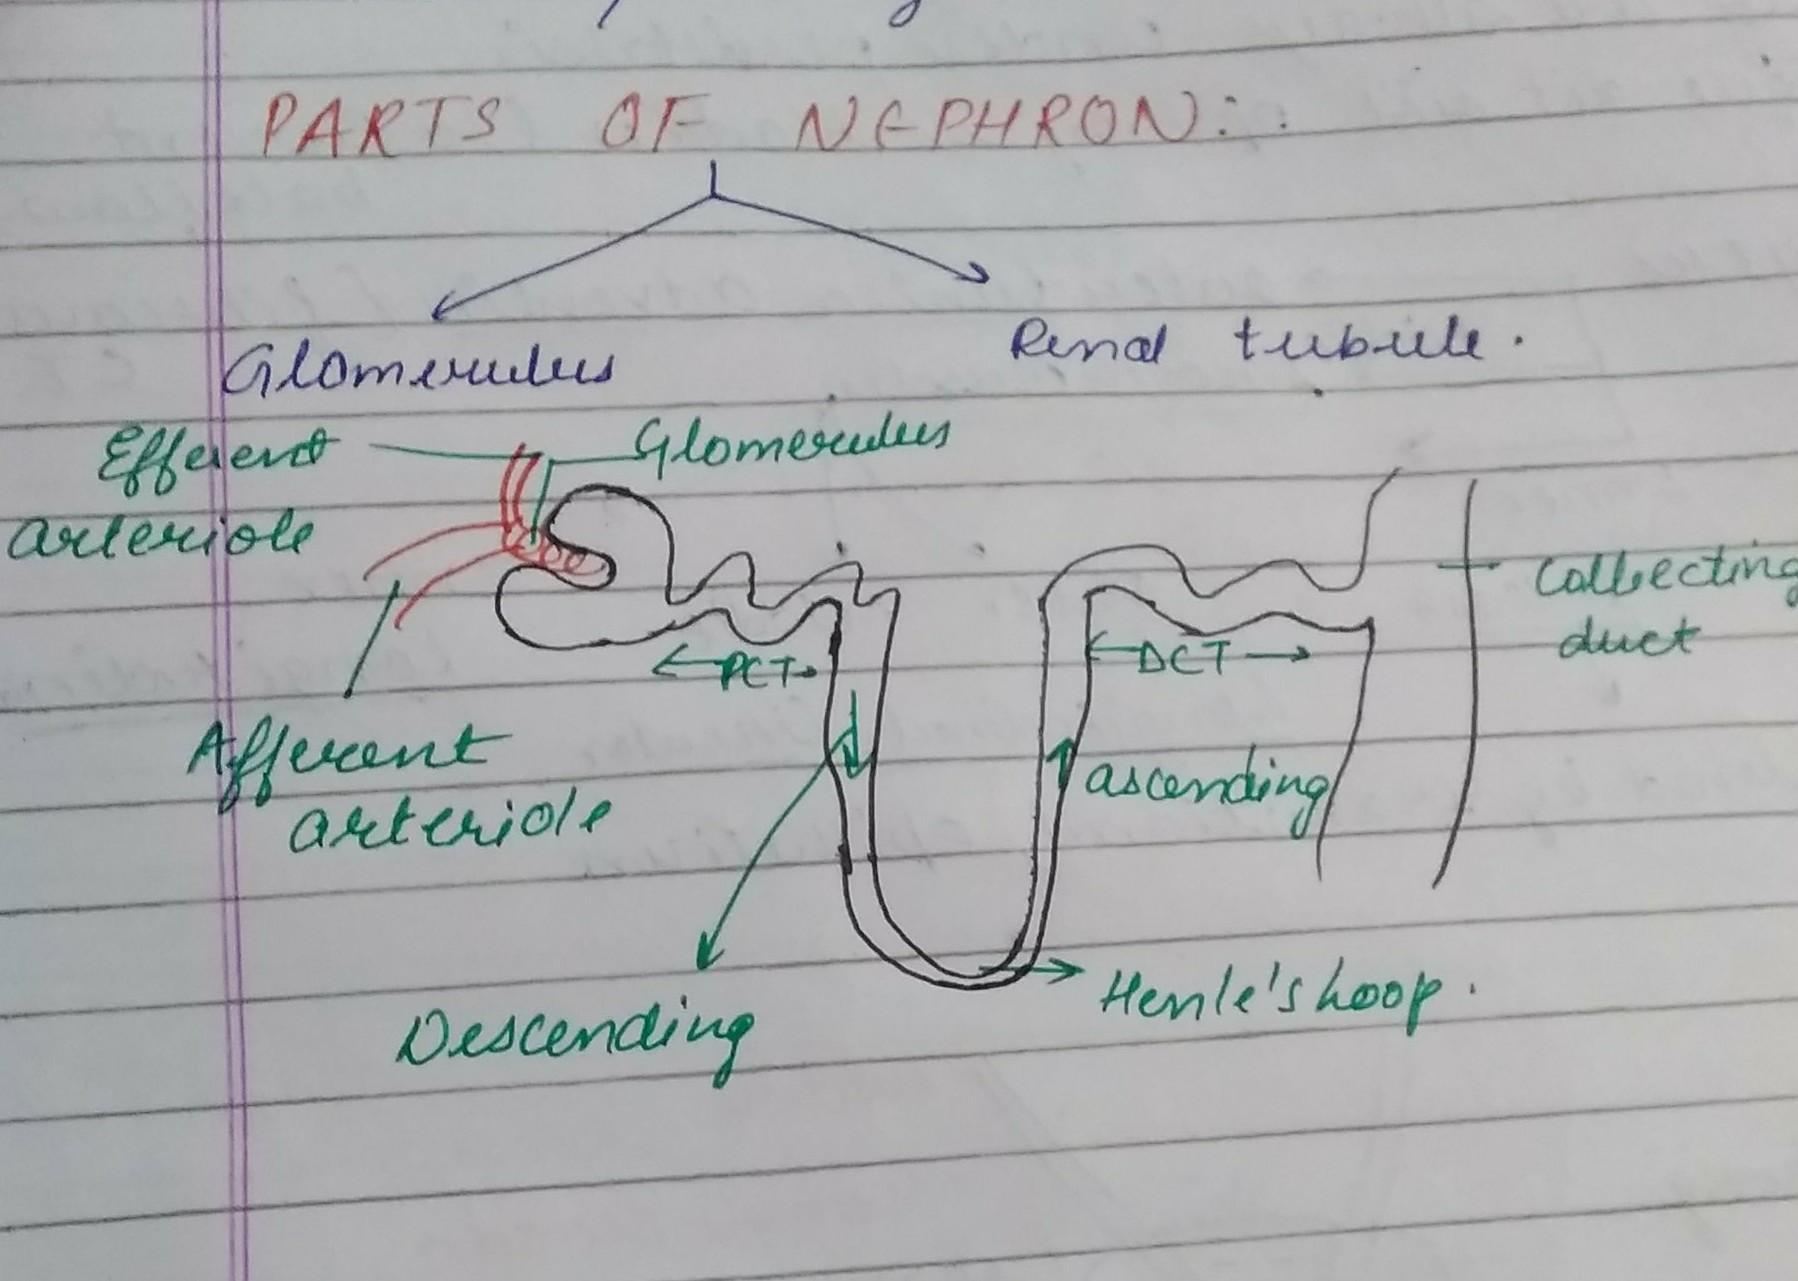 draw the structure of nephron - Brainly in